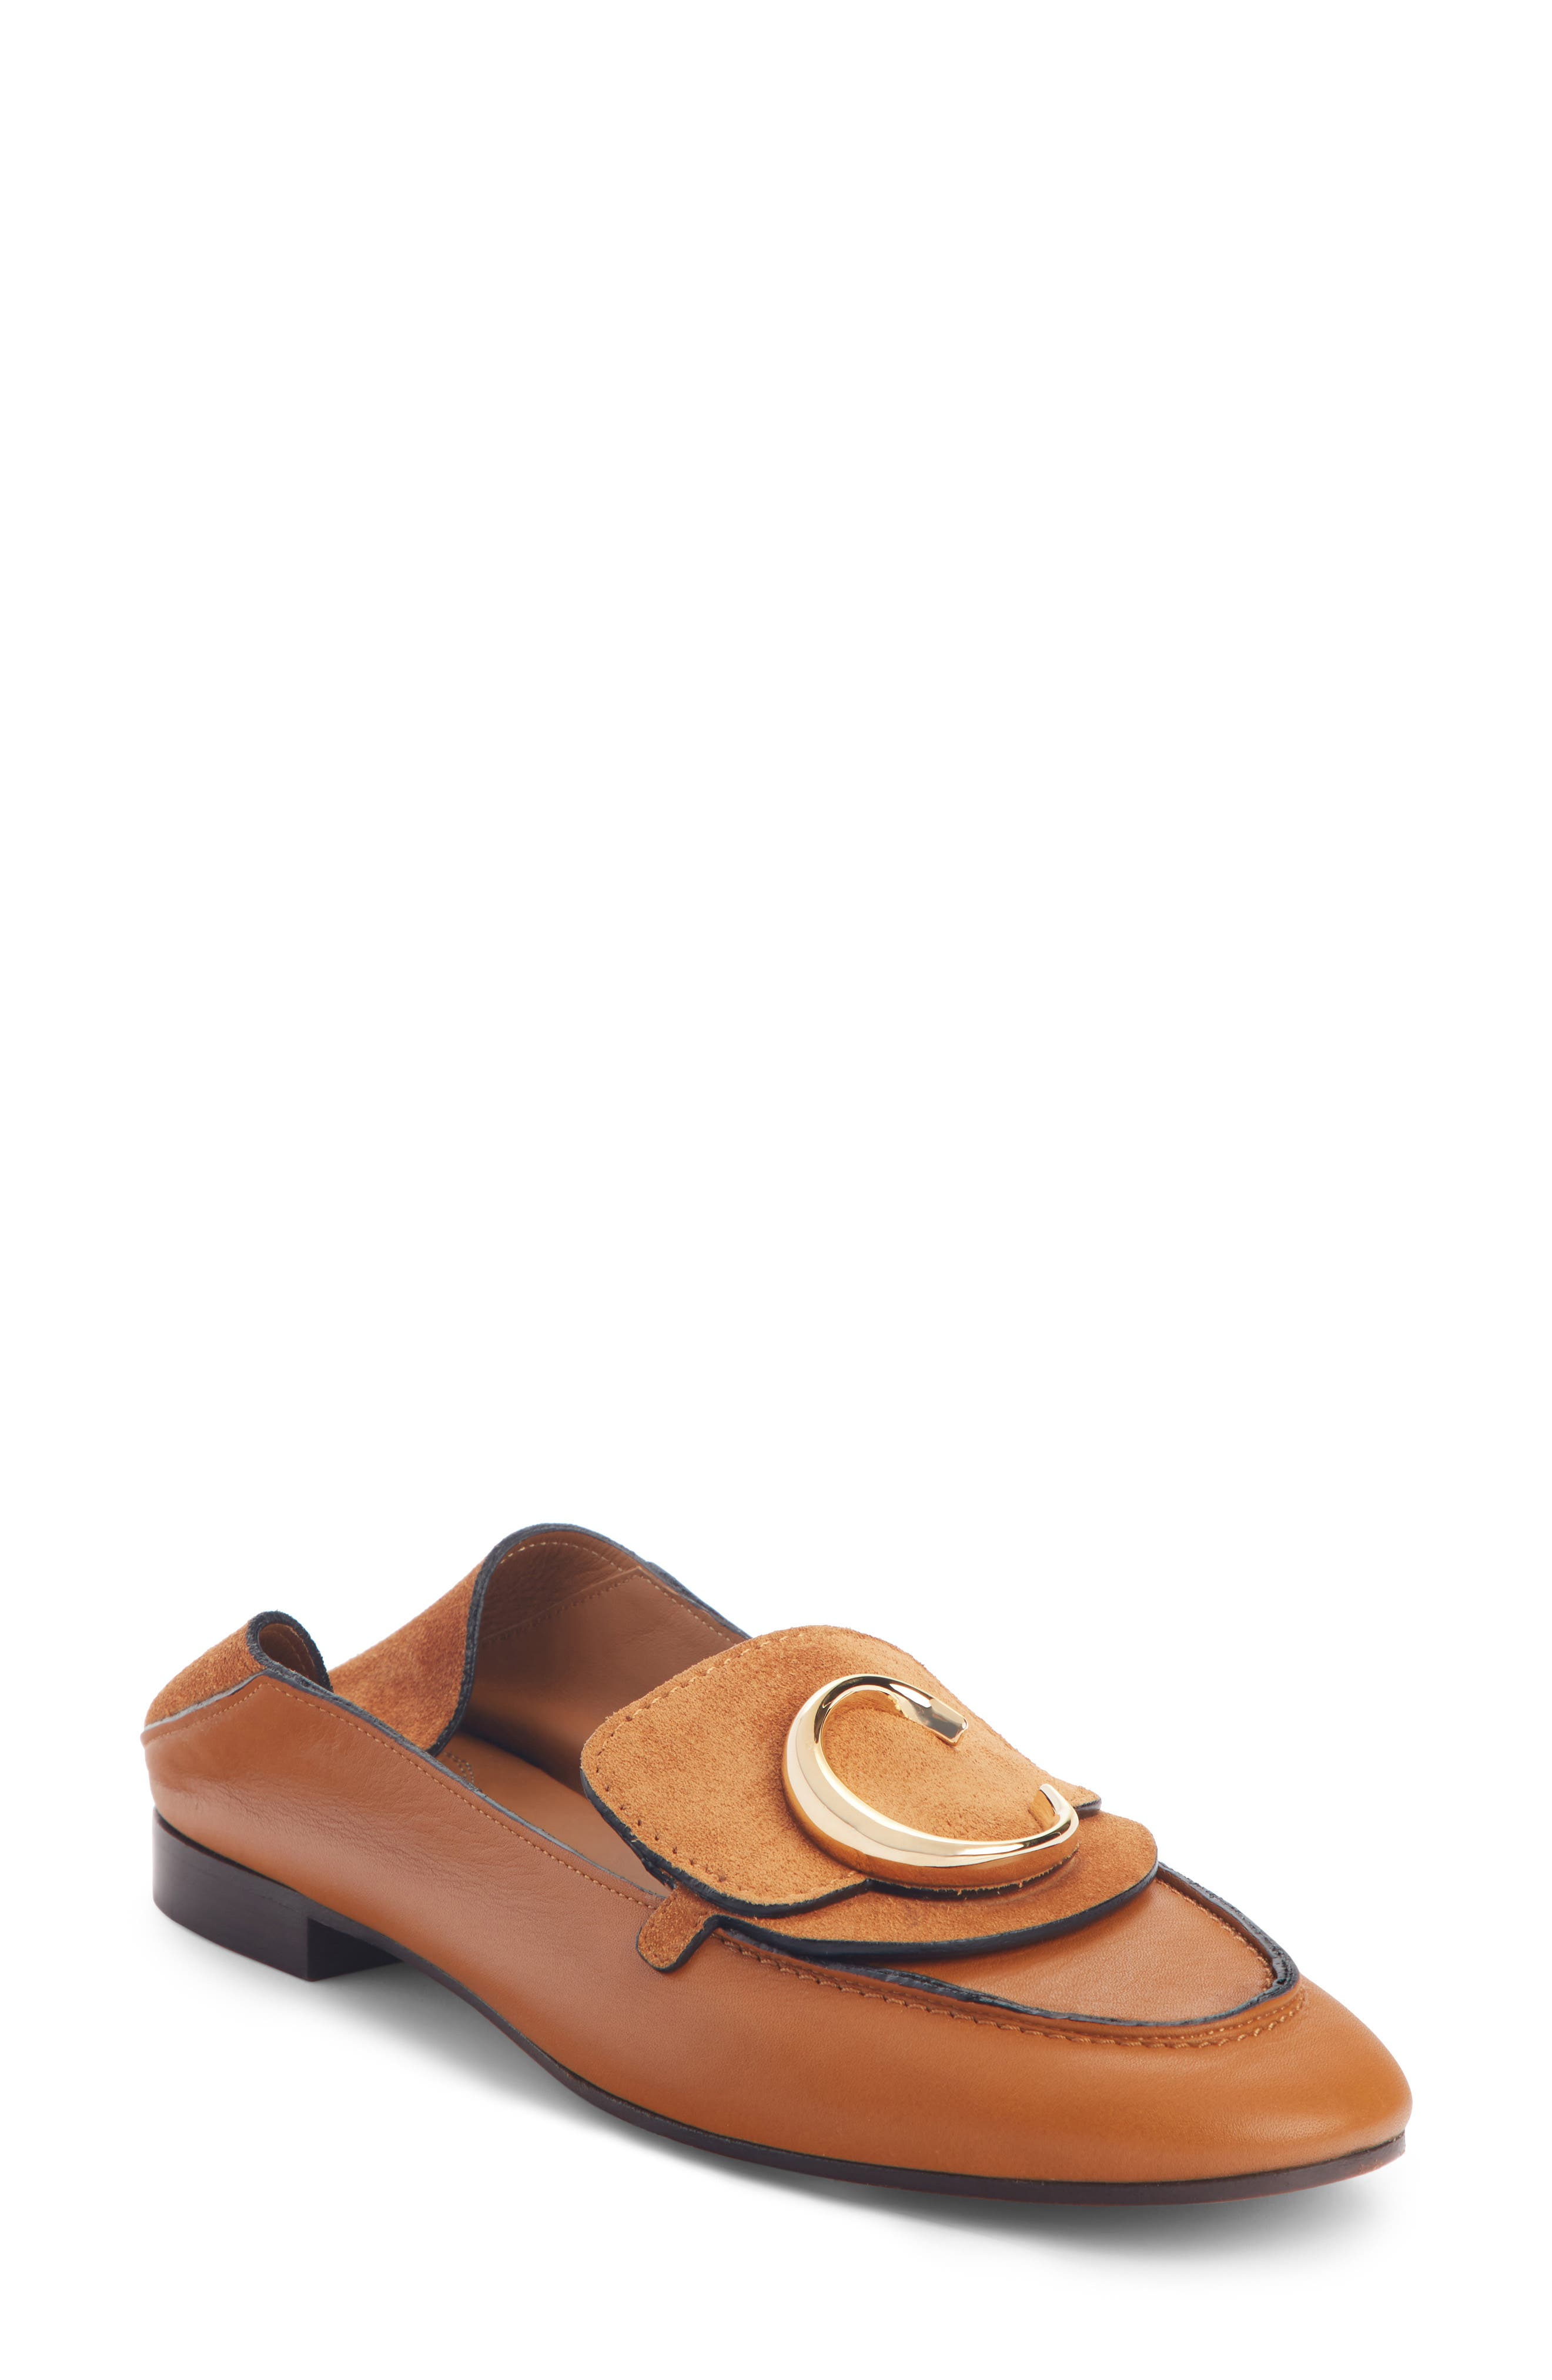 Chloe C Convertible Loafer, Brown